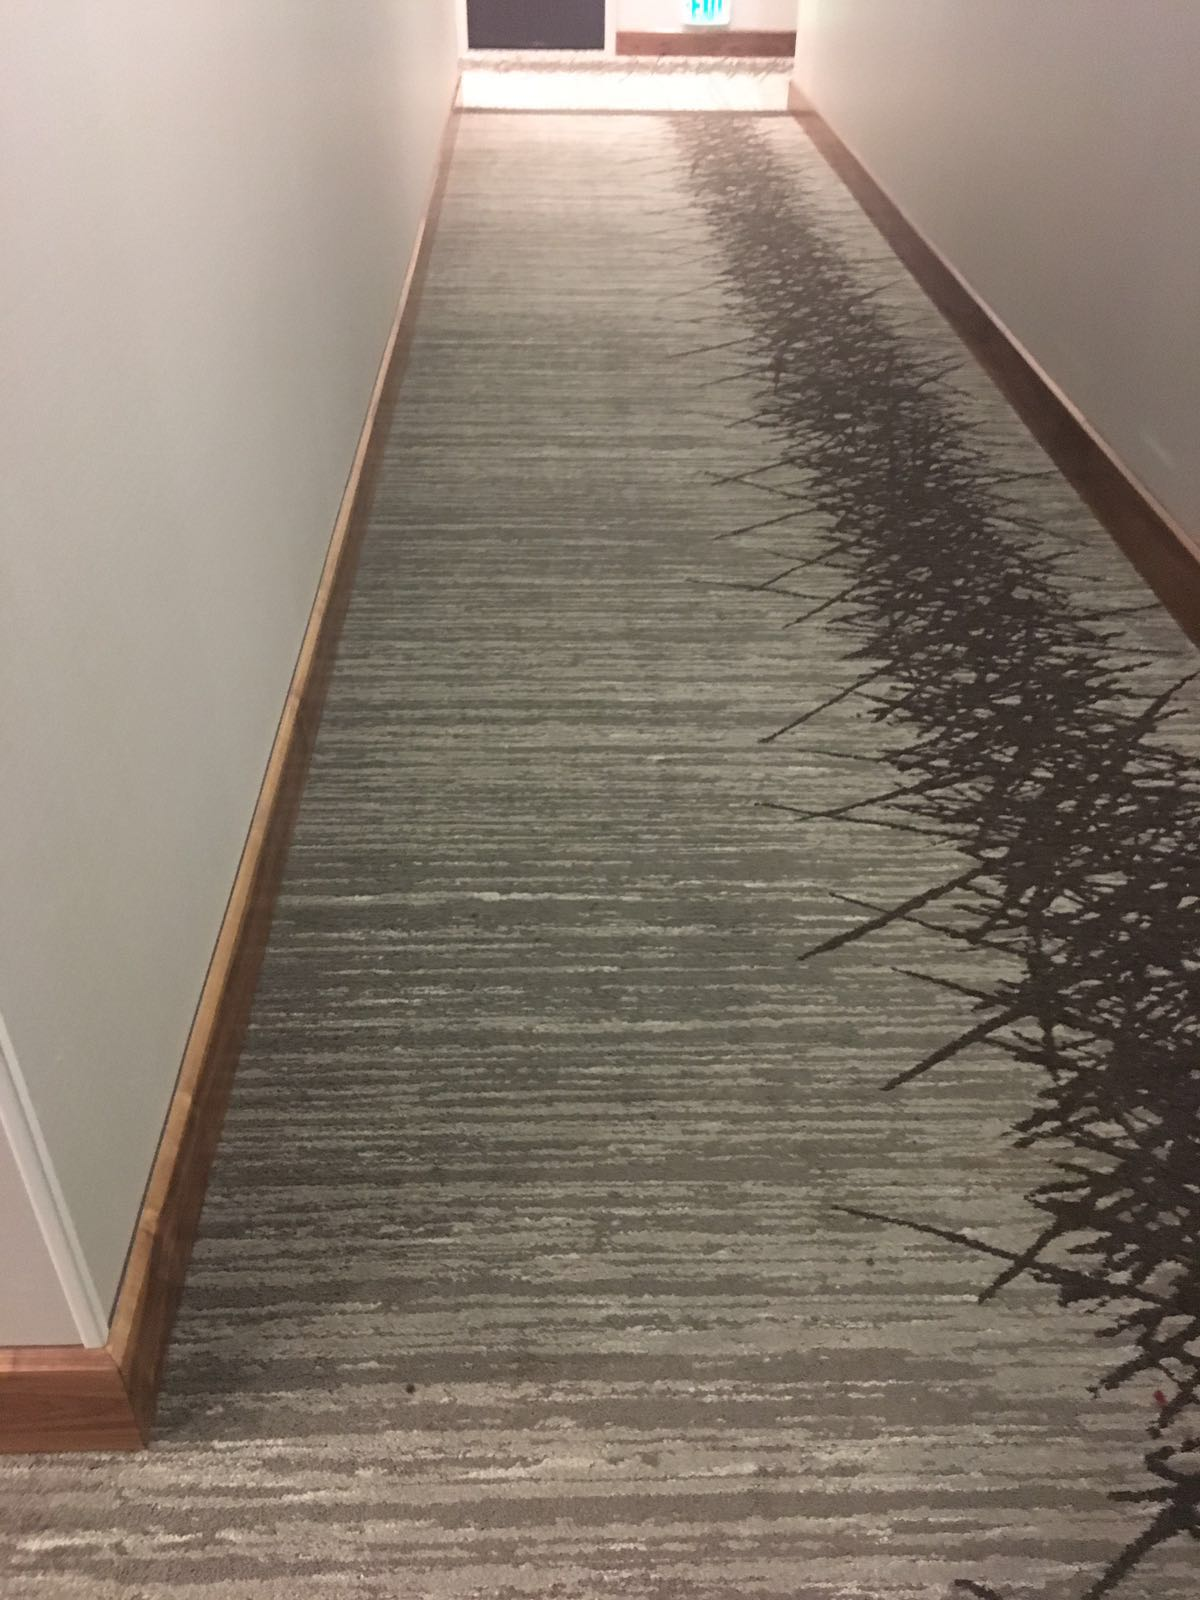 Commercial Carpet Cleaning Orange County Service Local Air Duct Cleaning Green Carpet Cleaning Orange County